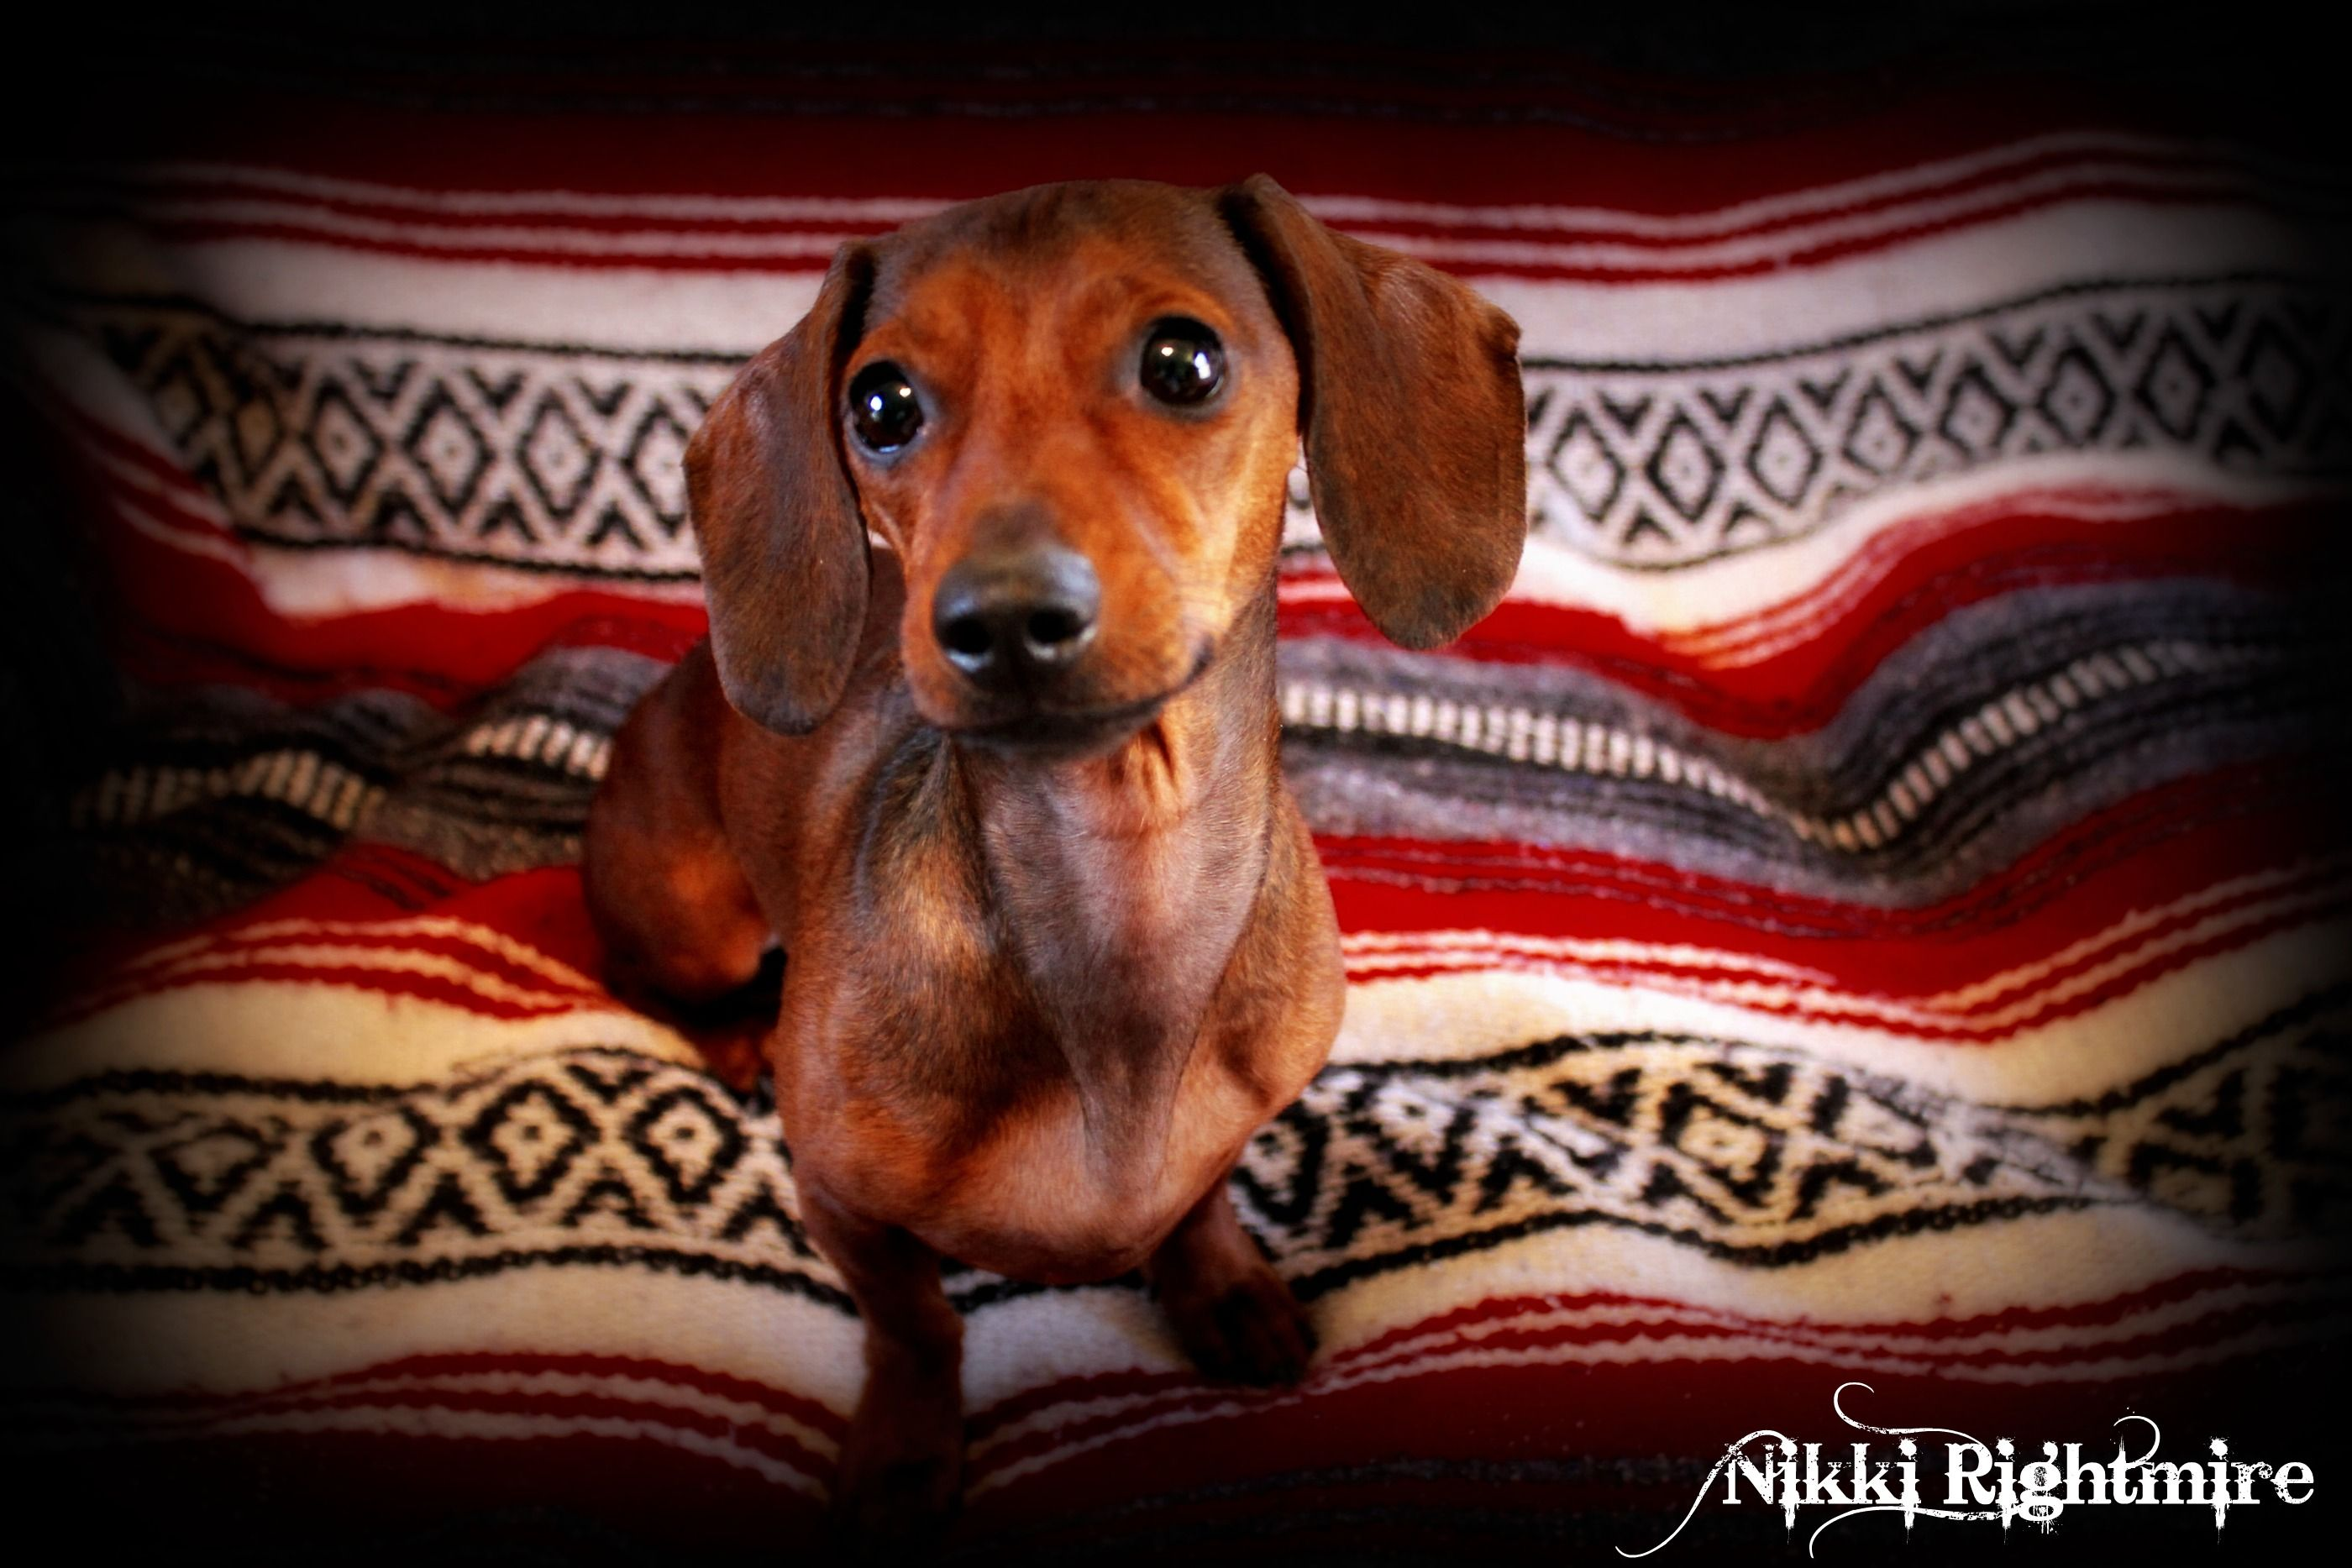 Nikki Rightmire Photography Doxie Delight Dachshund Love